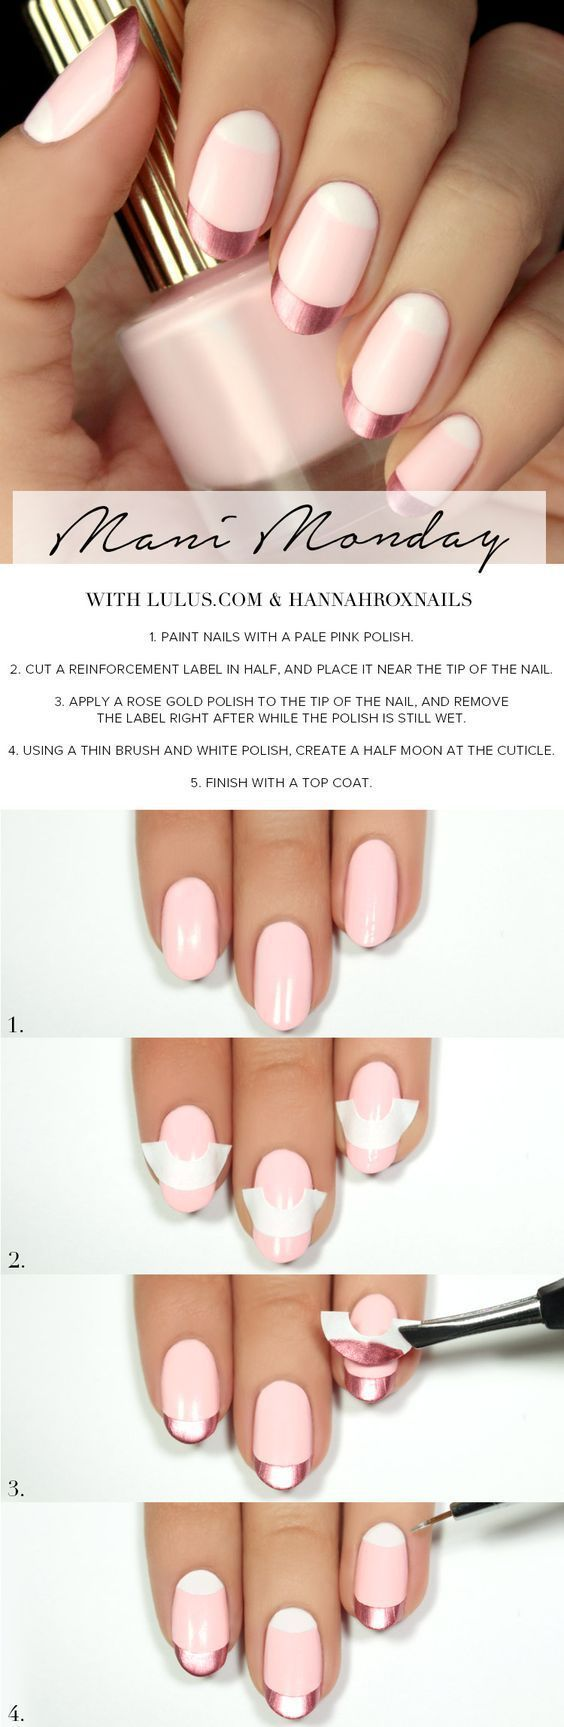 111 Nail Art Tutorials - Learn How To Do The Simple Ones To ...